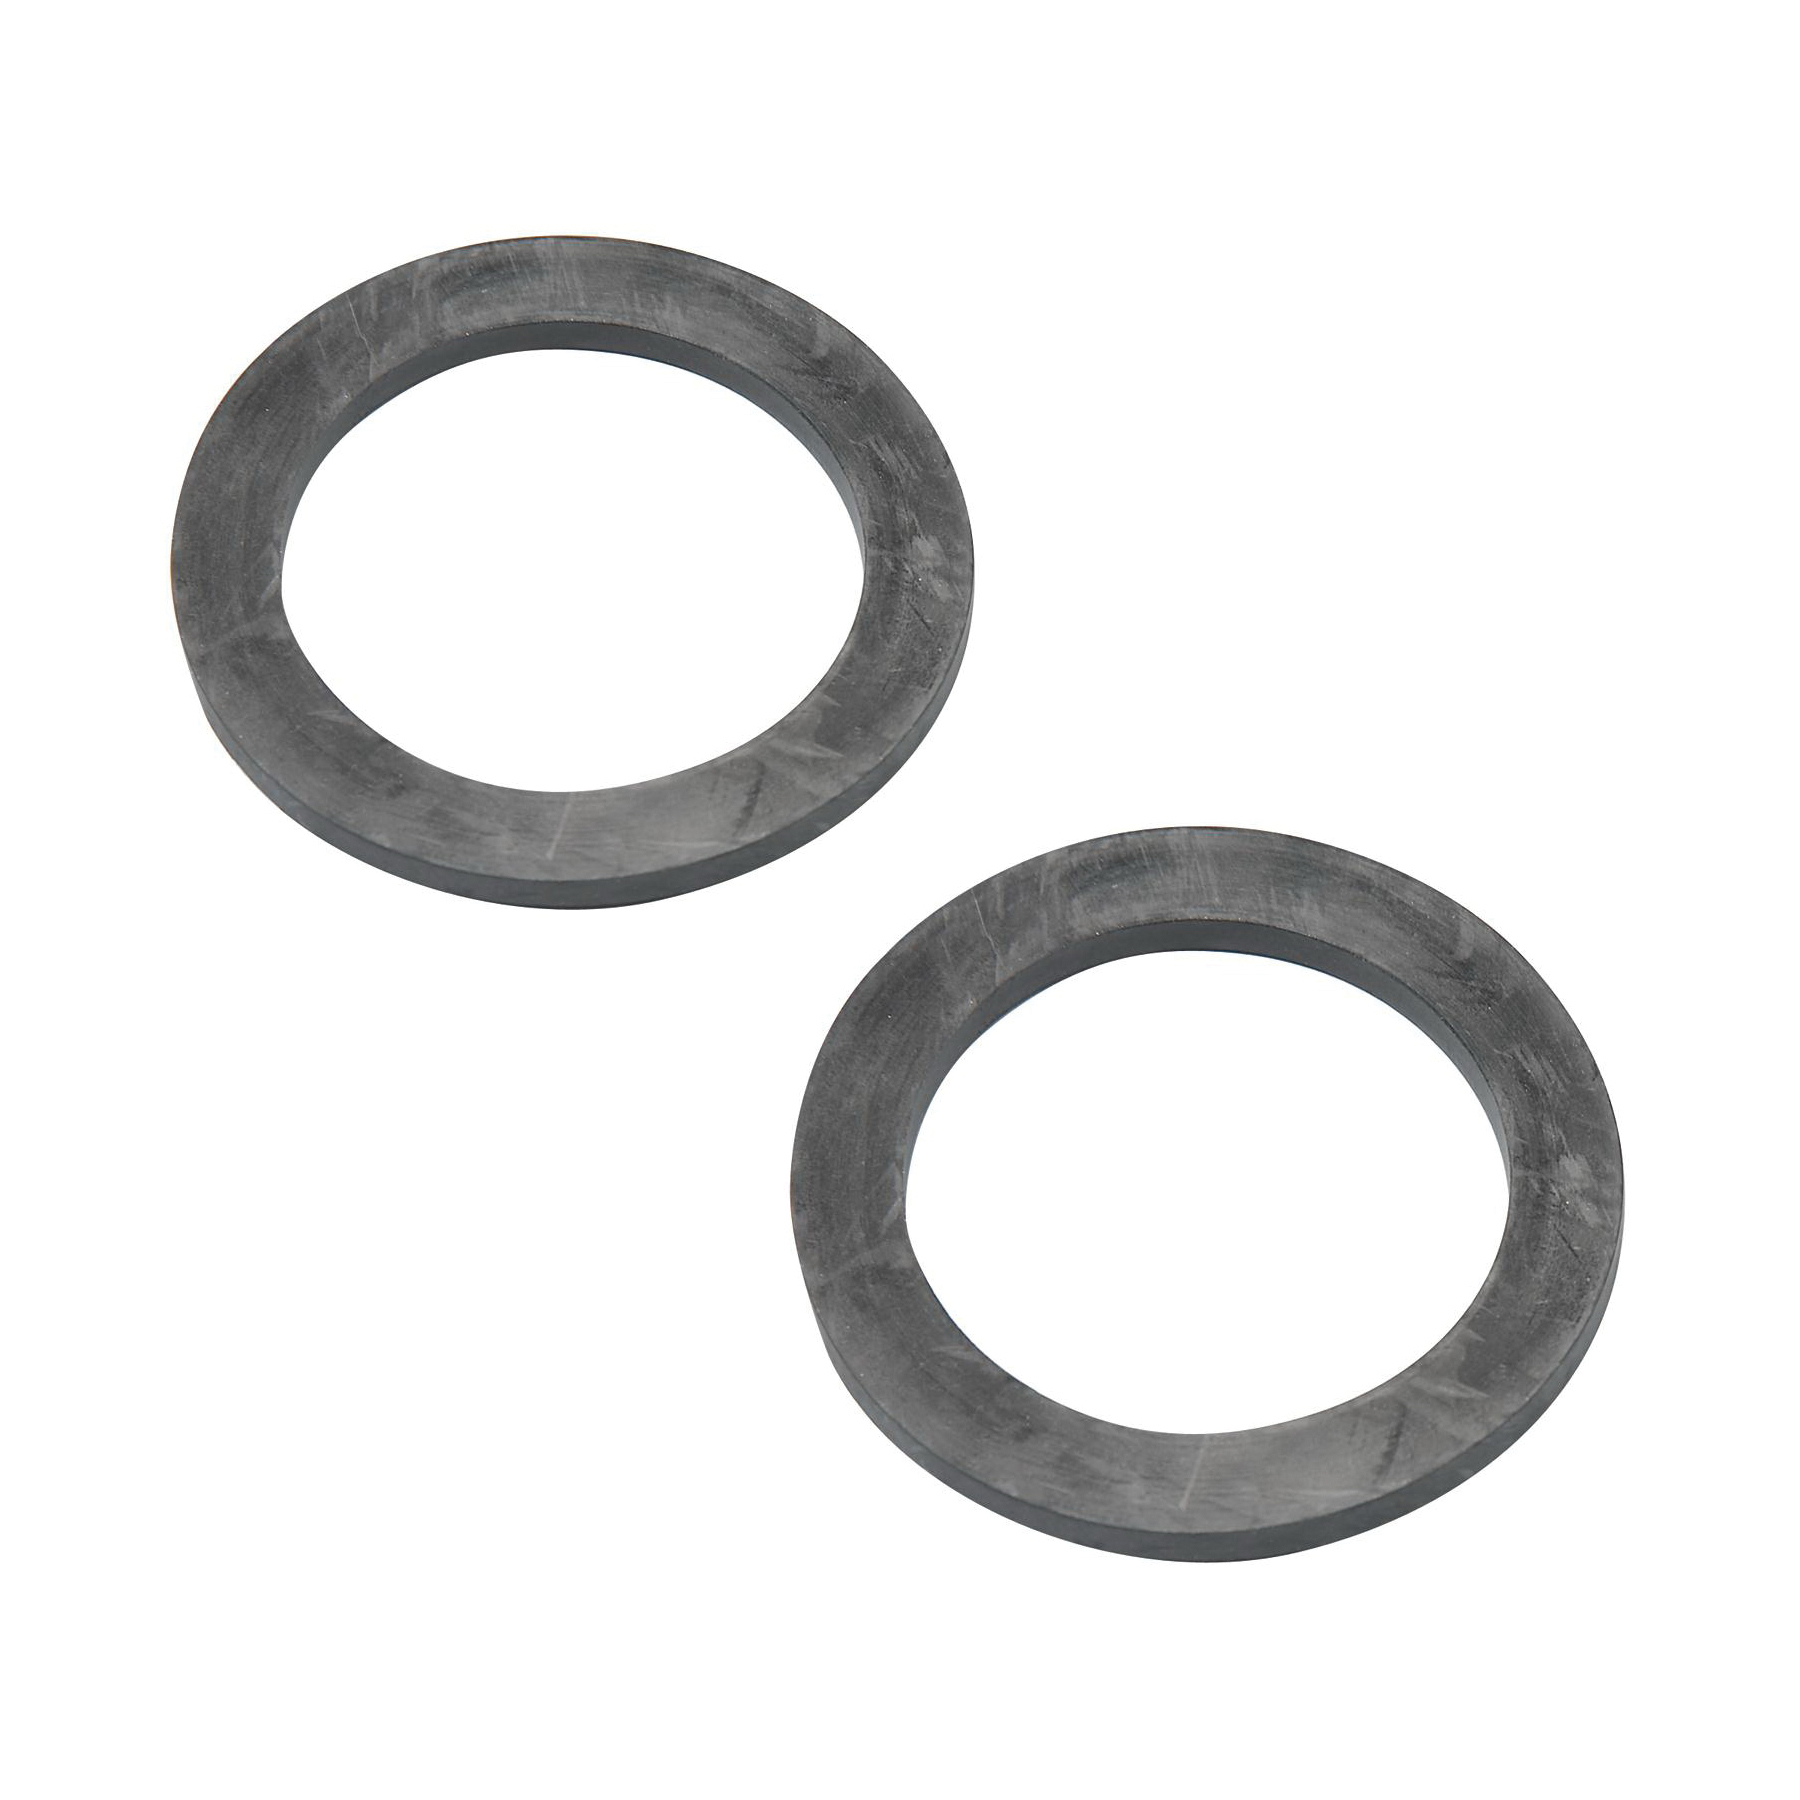 WATTS® 0881404 Dielectric Union Gasket Kit, 1-1/2 in